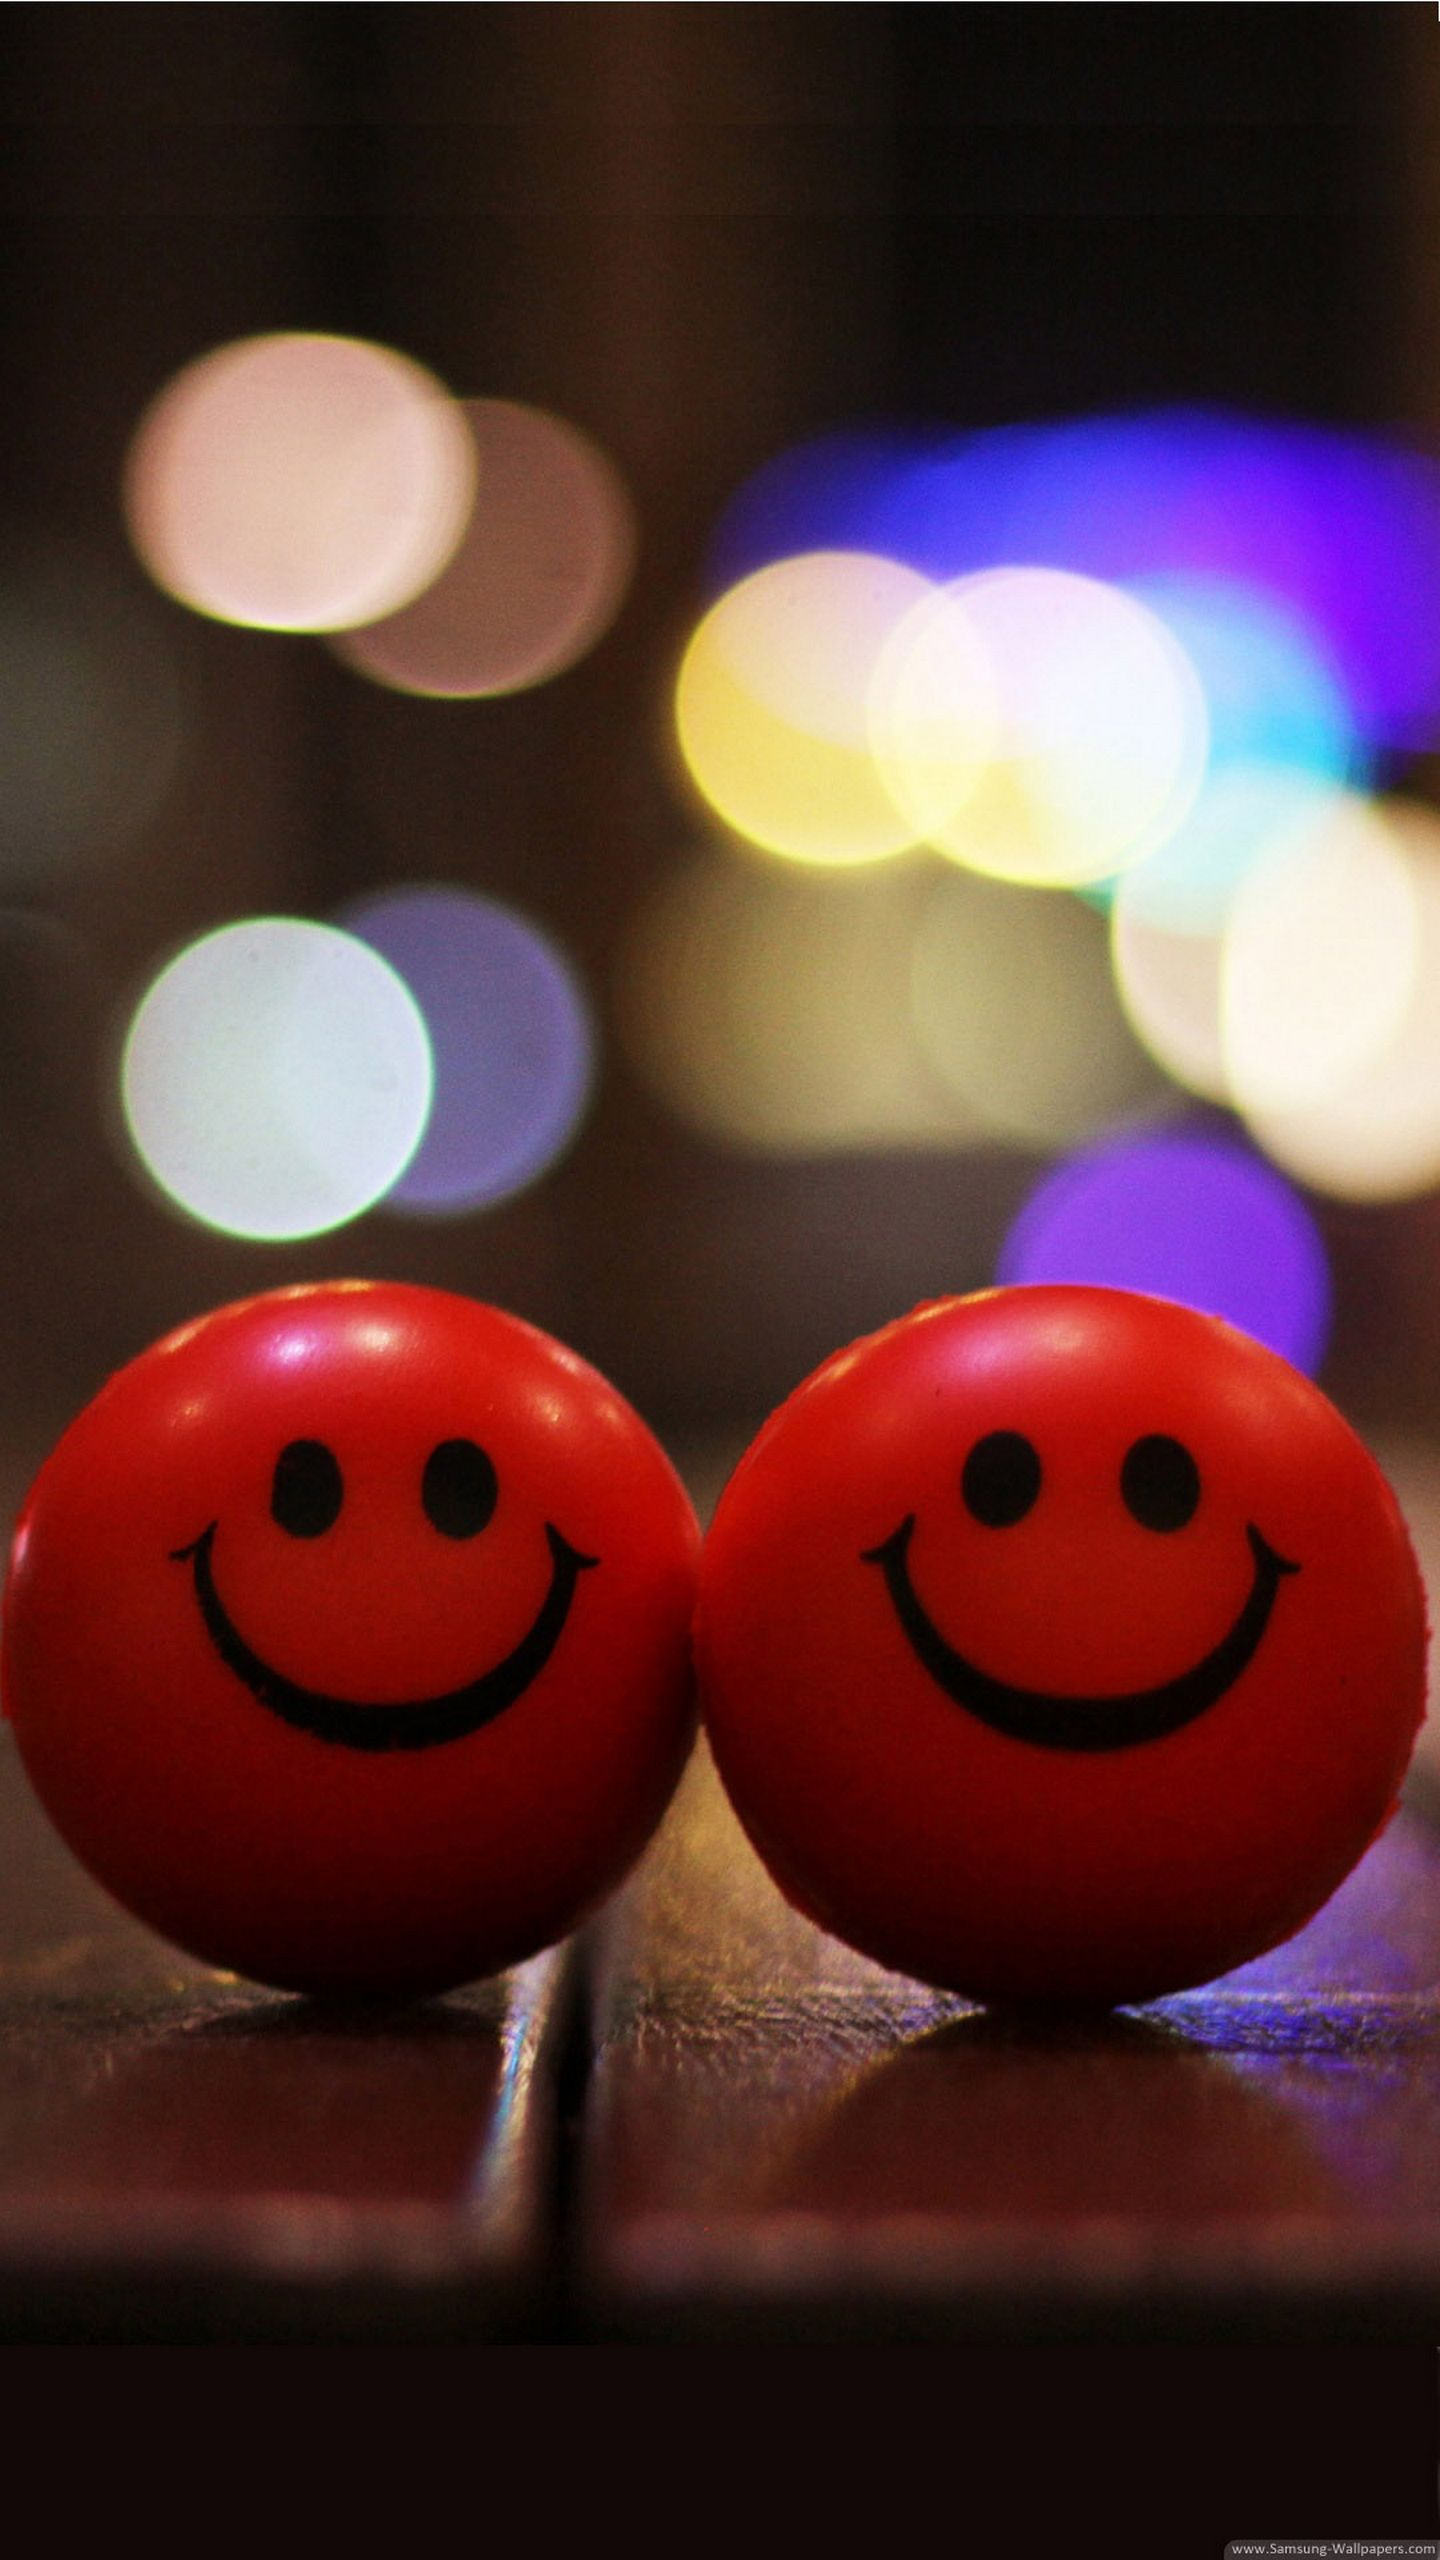 Two Little Red Smiley Balls Cute Love Wallpapers Love Wallpaper Download Cute Mobile Wallpapers